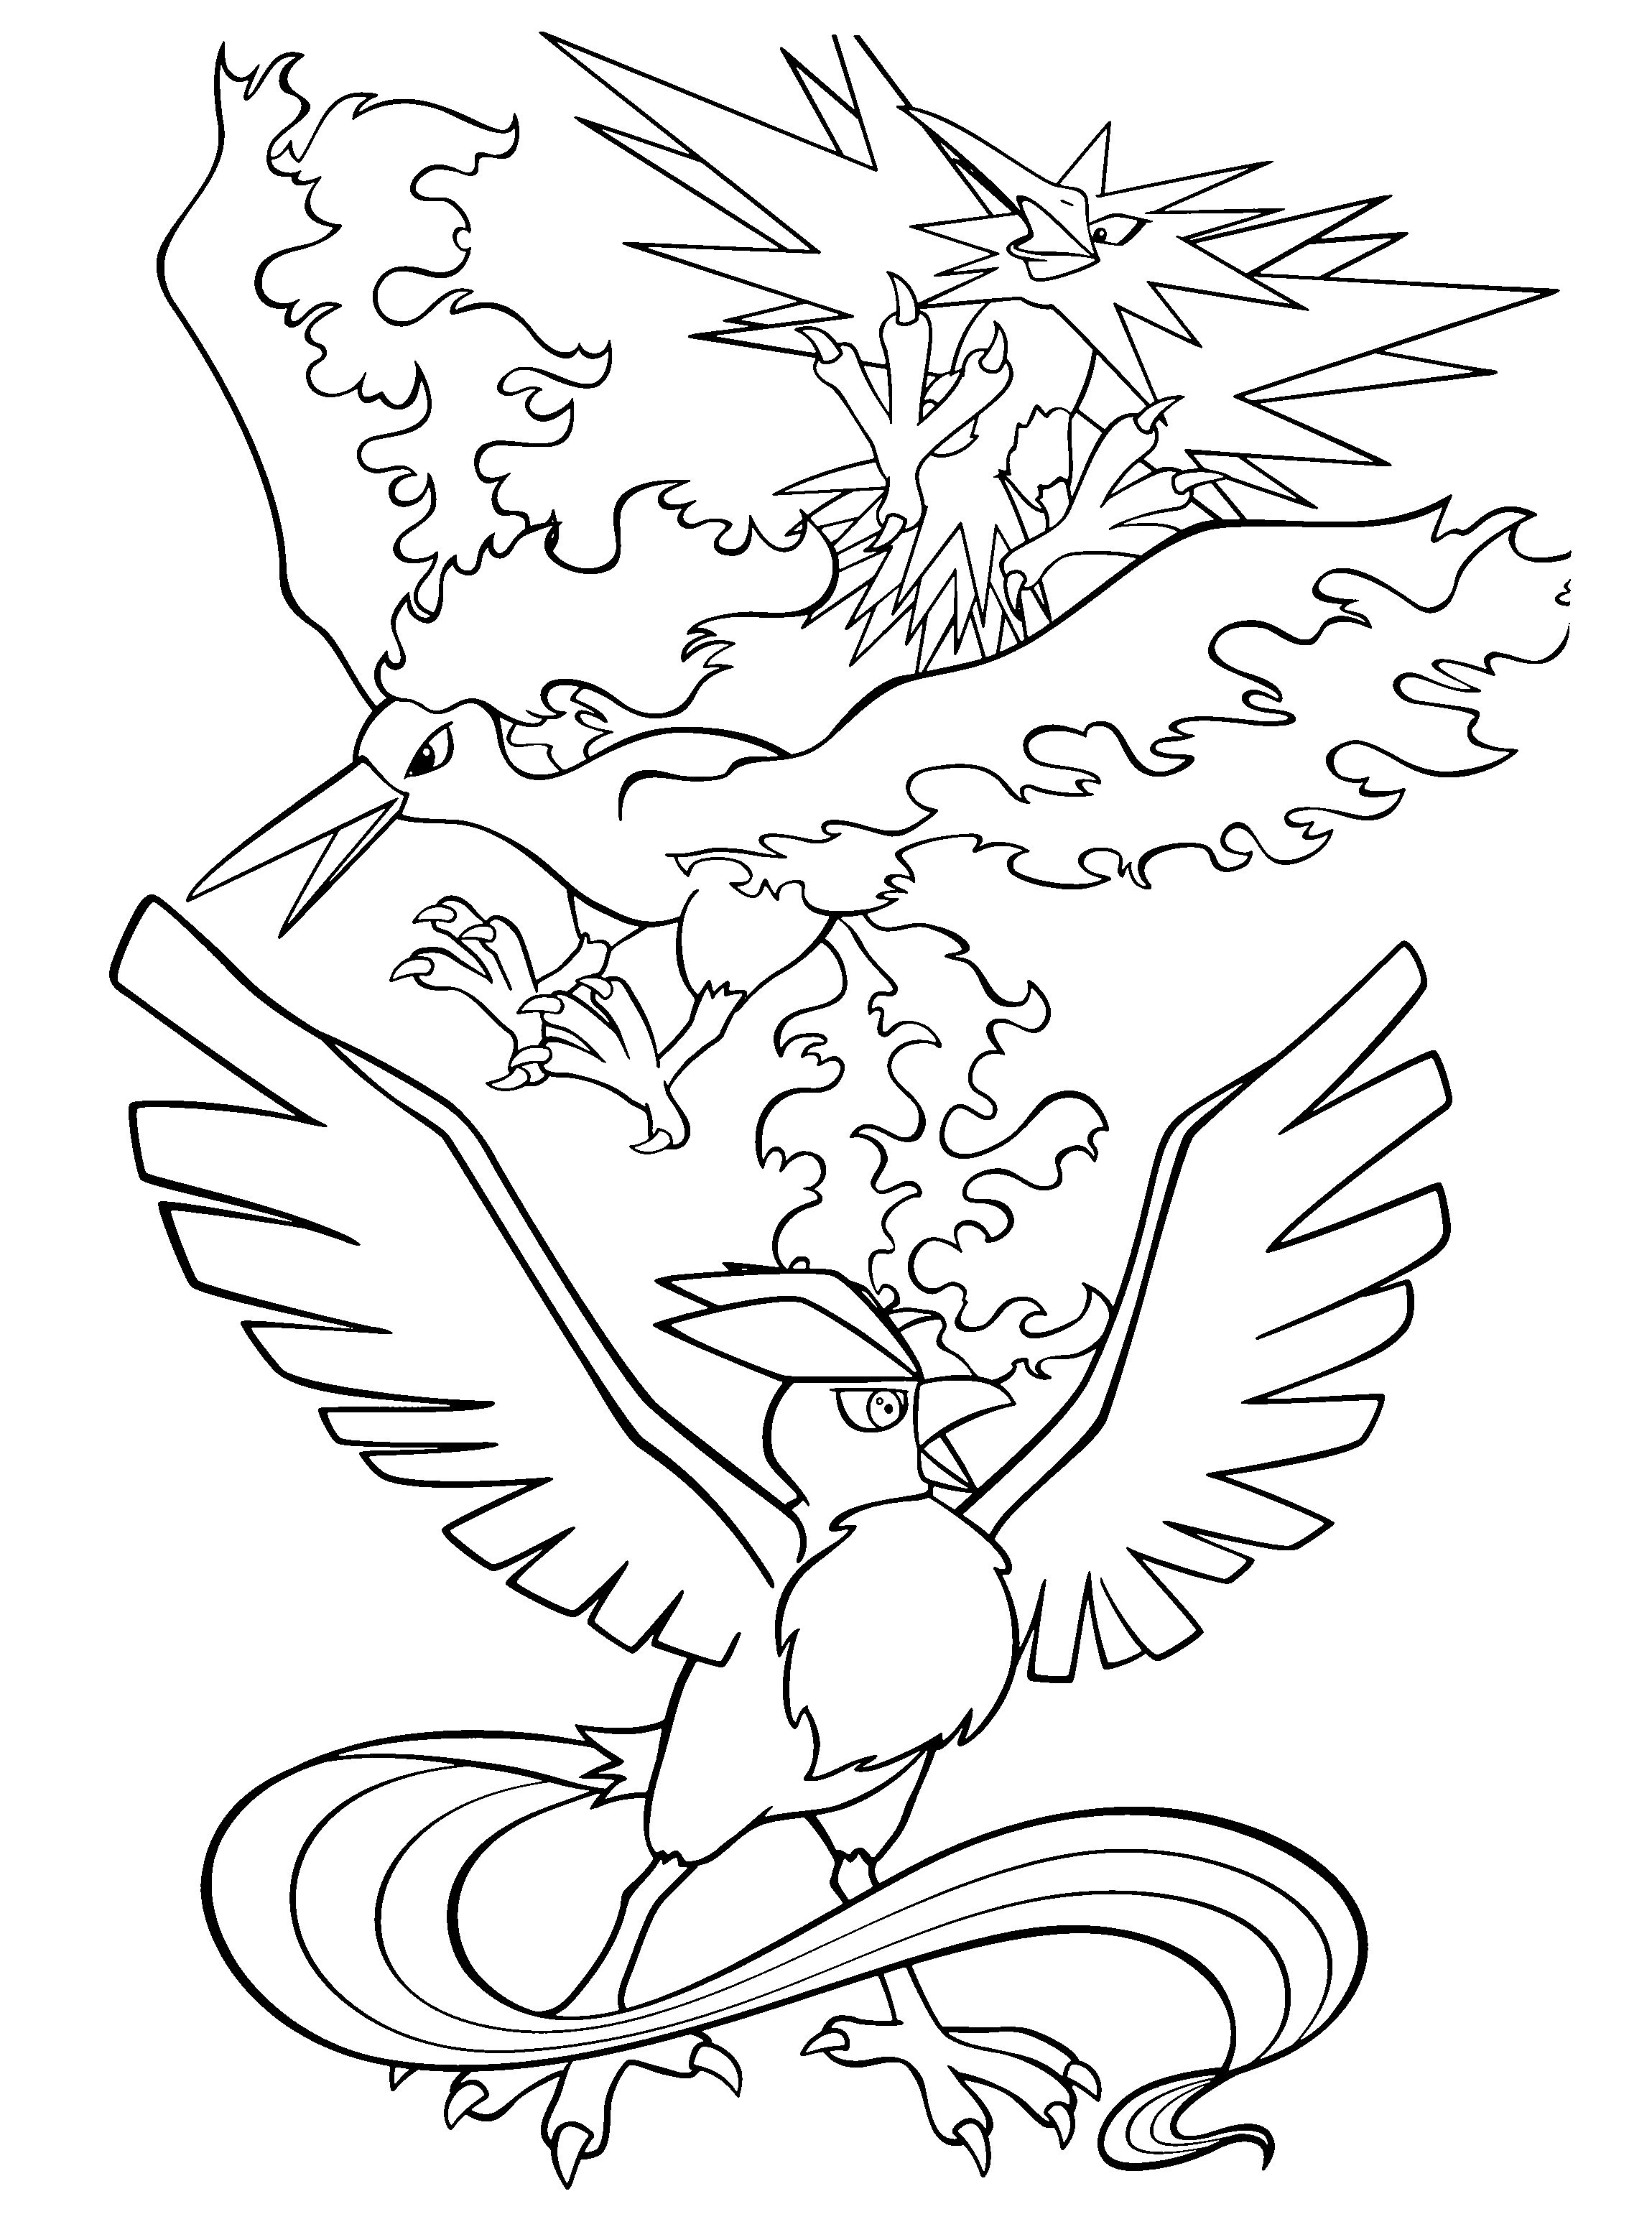 Legendary Bird Pokemon Coloring Pages Gallery With Images